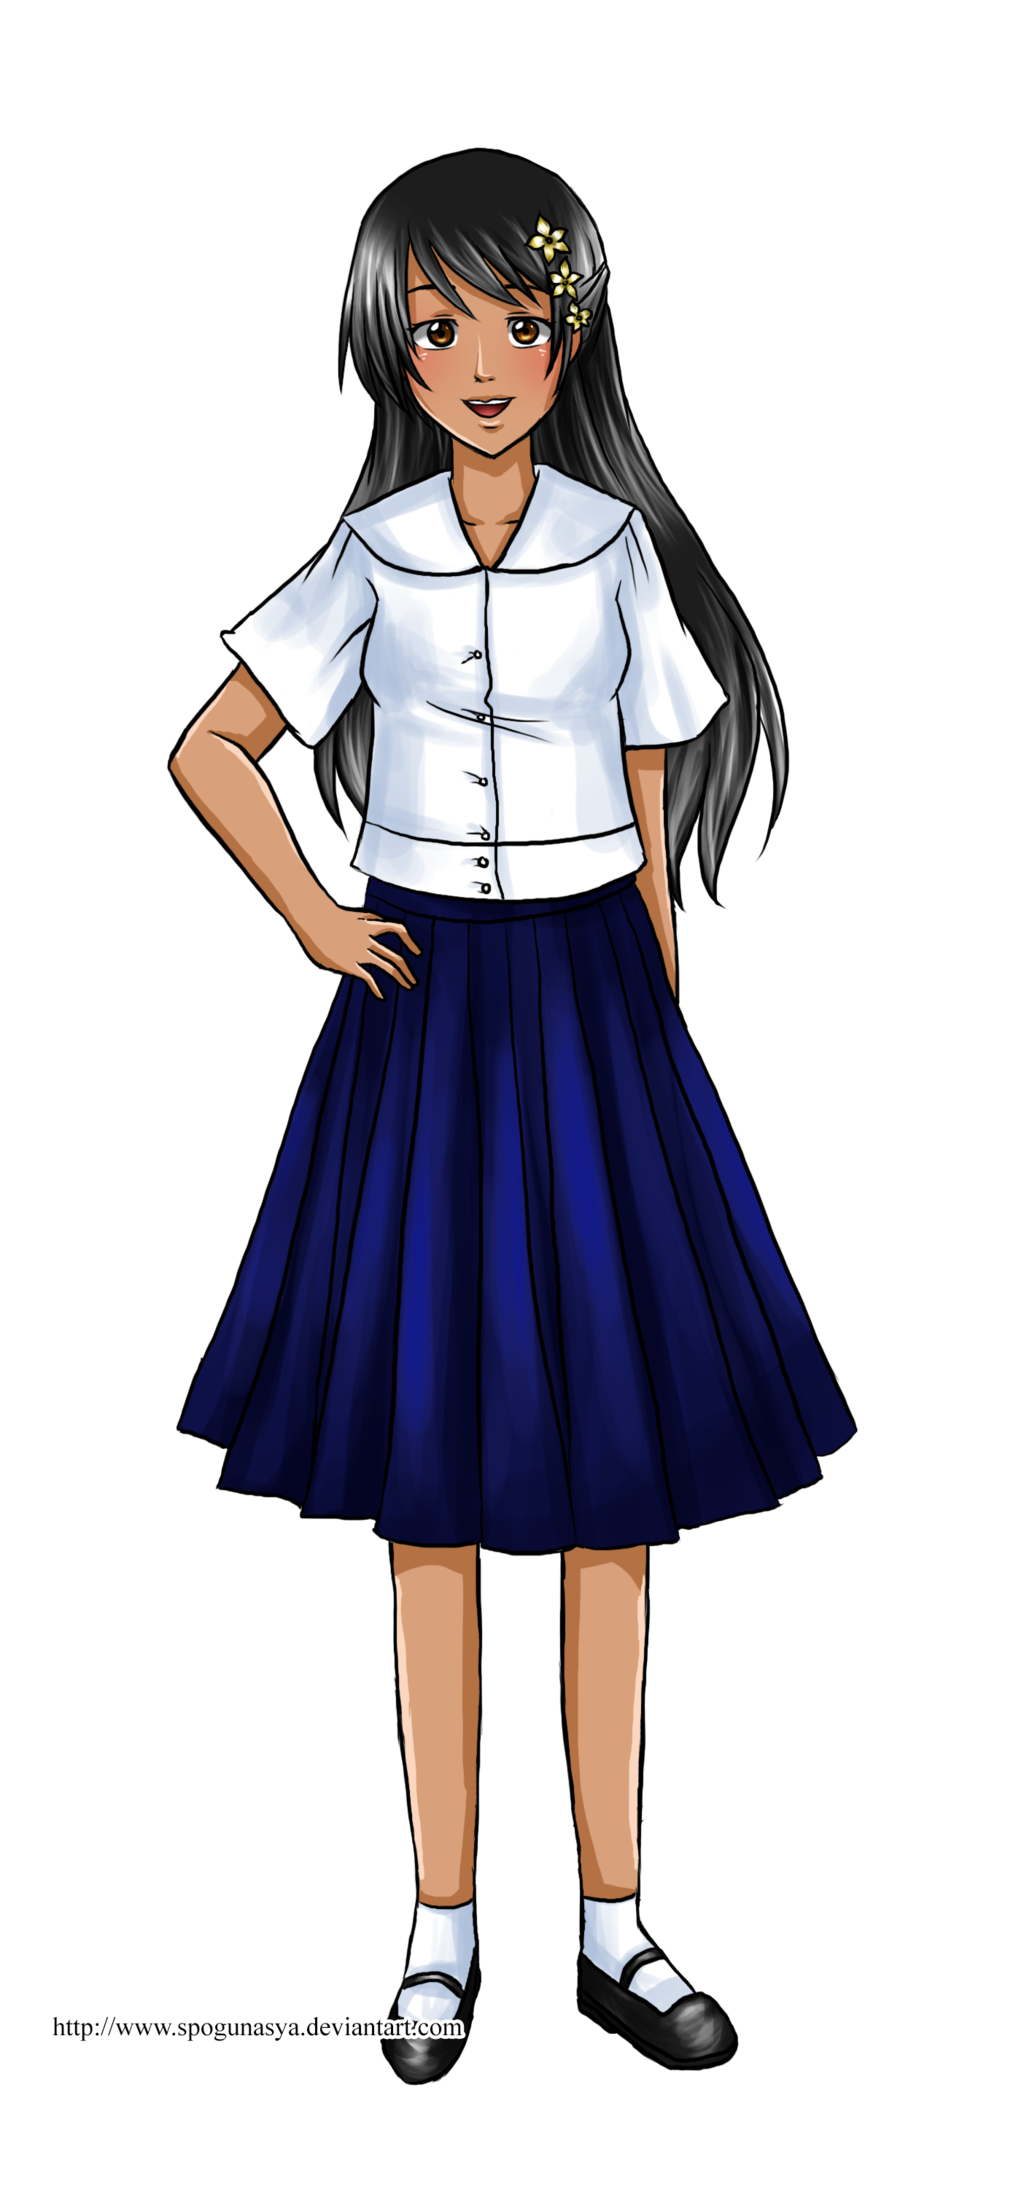 Hetalia philippine school by. Jobs clipart uniform